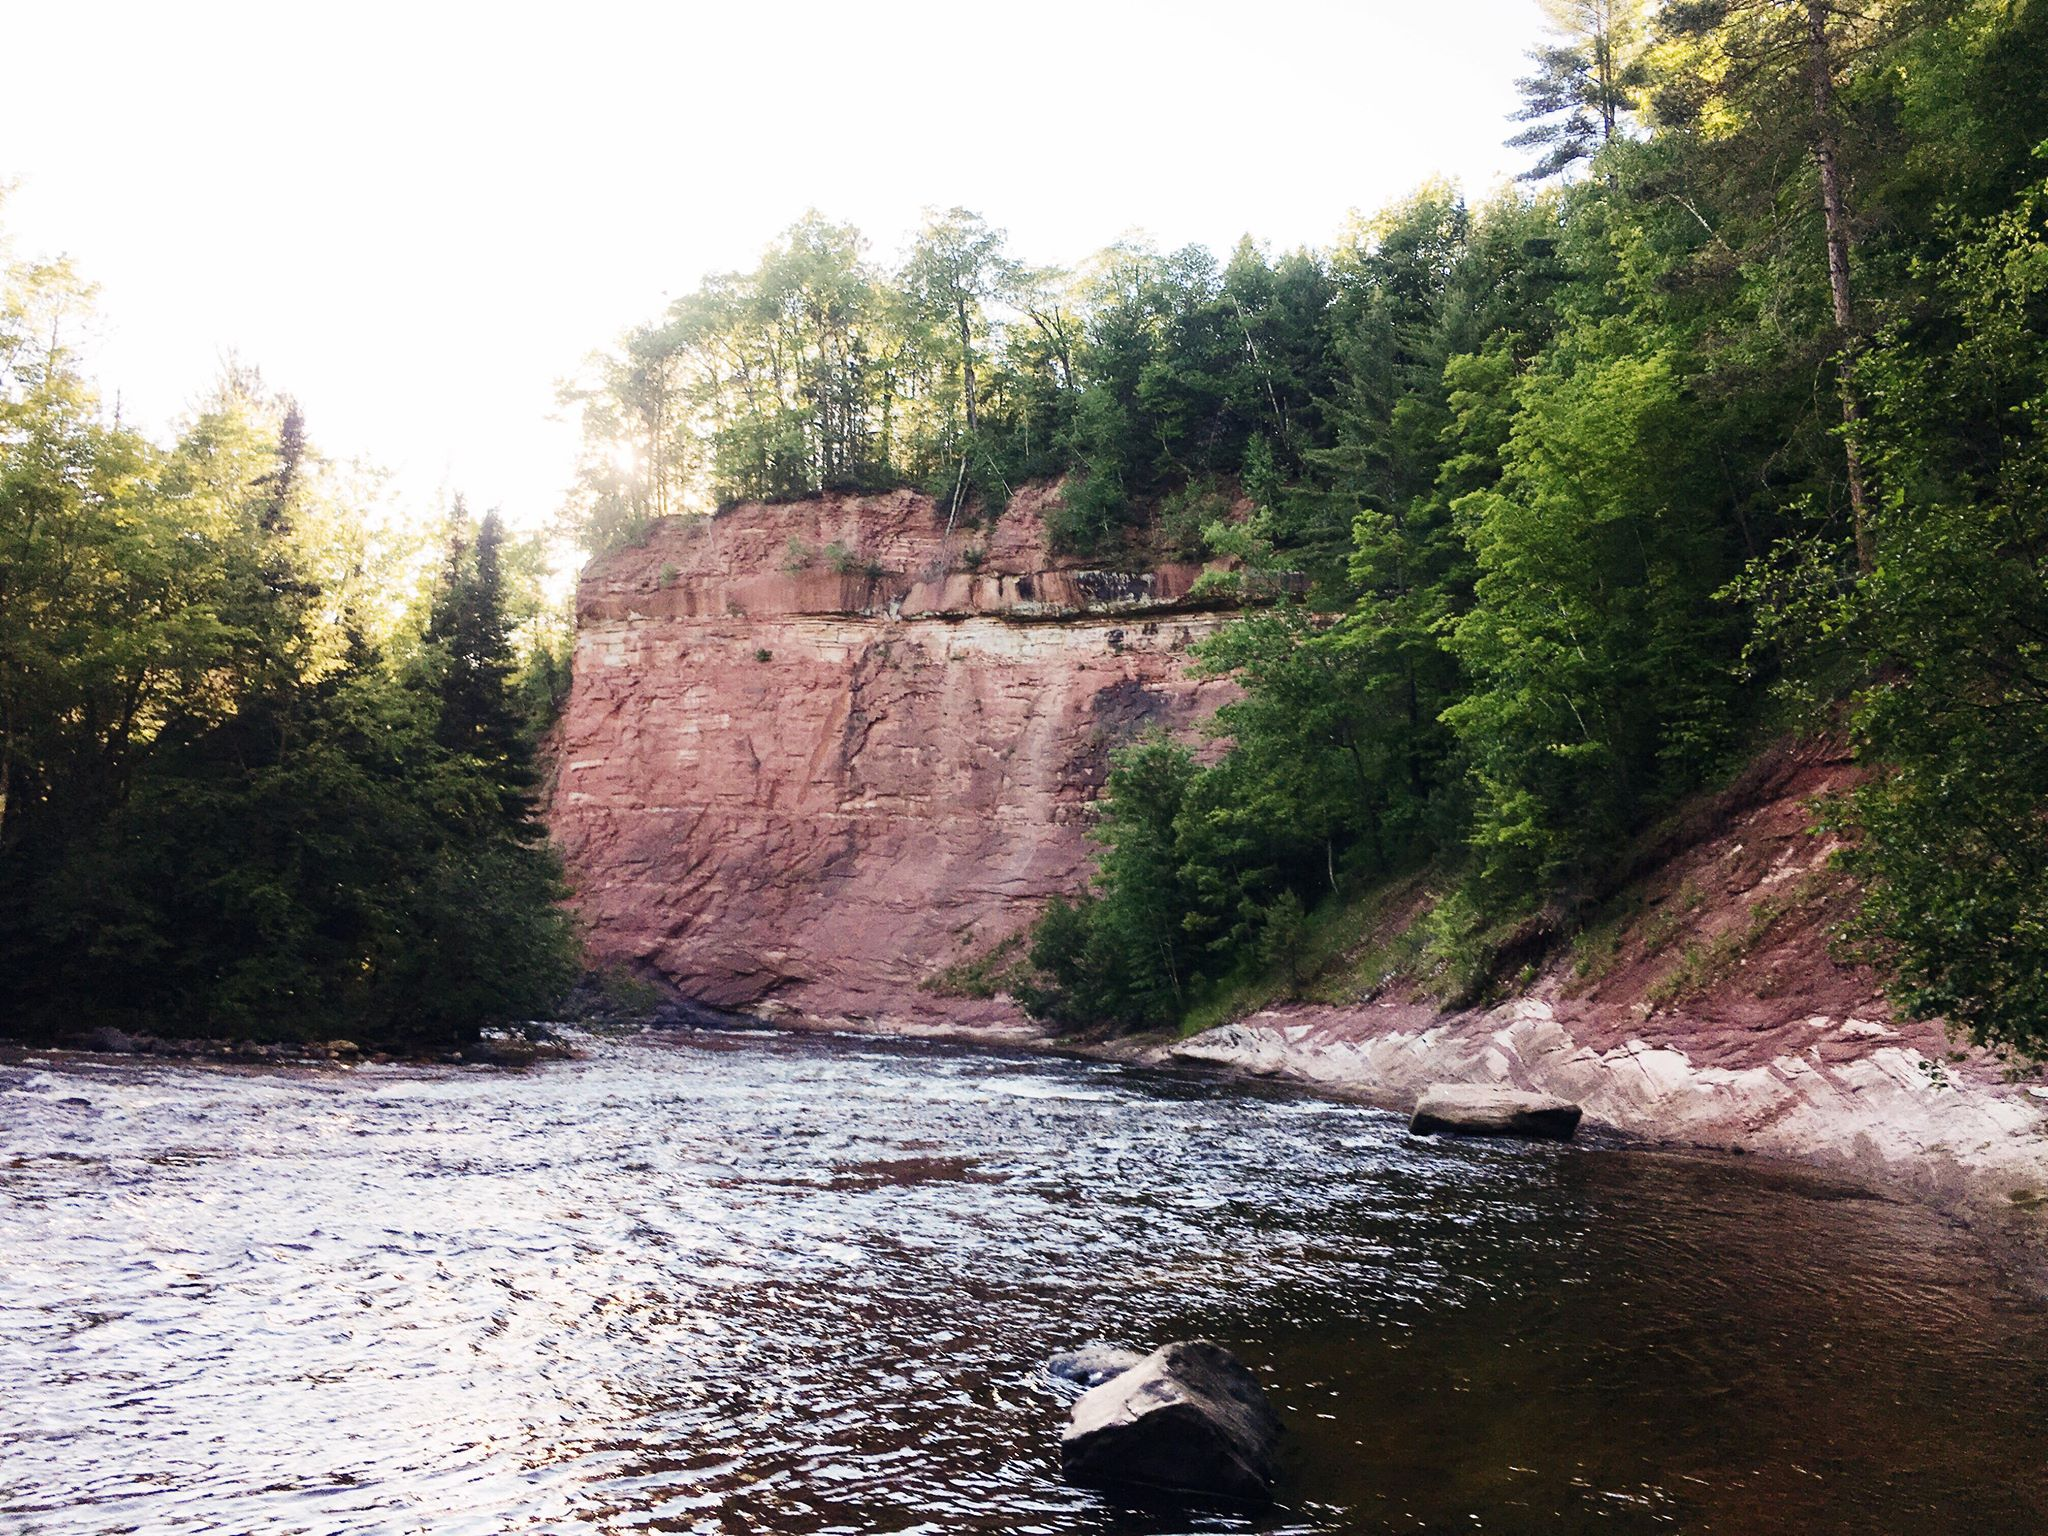 Fishing in the Sturgeon River gorge.